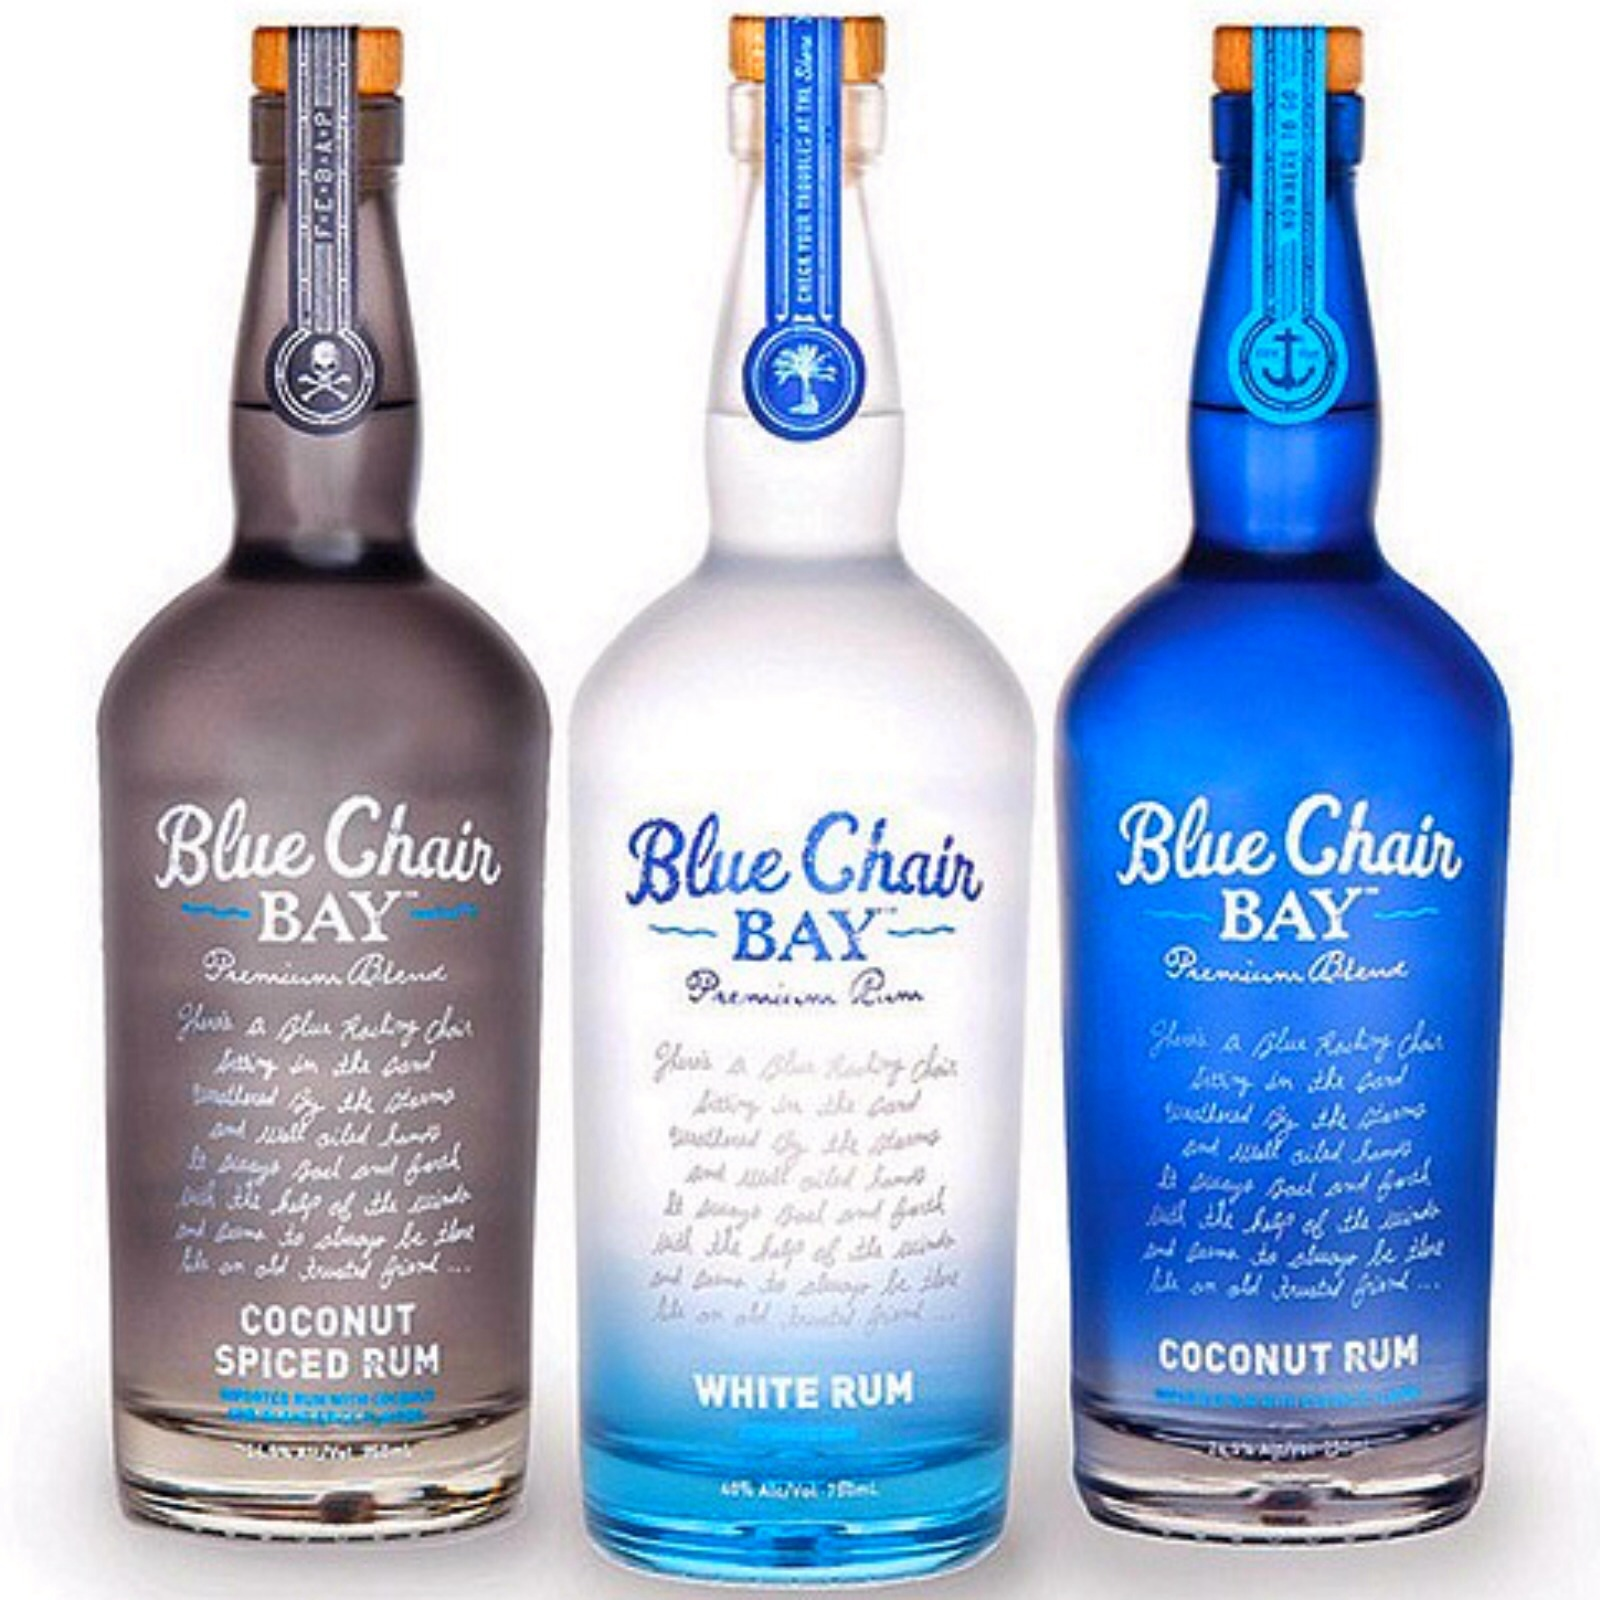 Blue Chair Bay Coconut Rum Blue Chair Bay On Tour